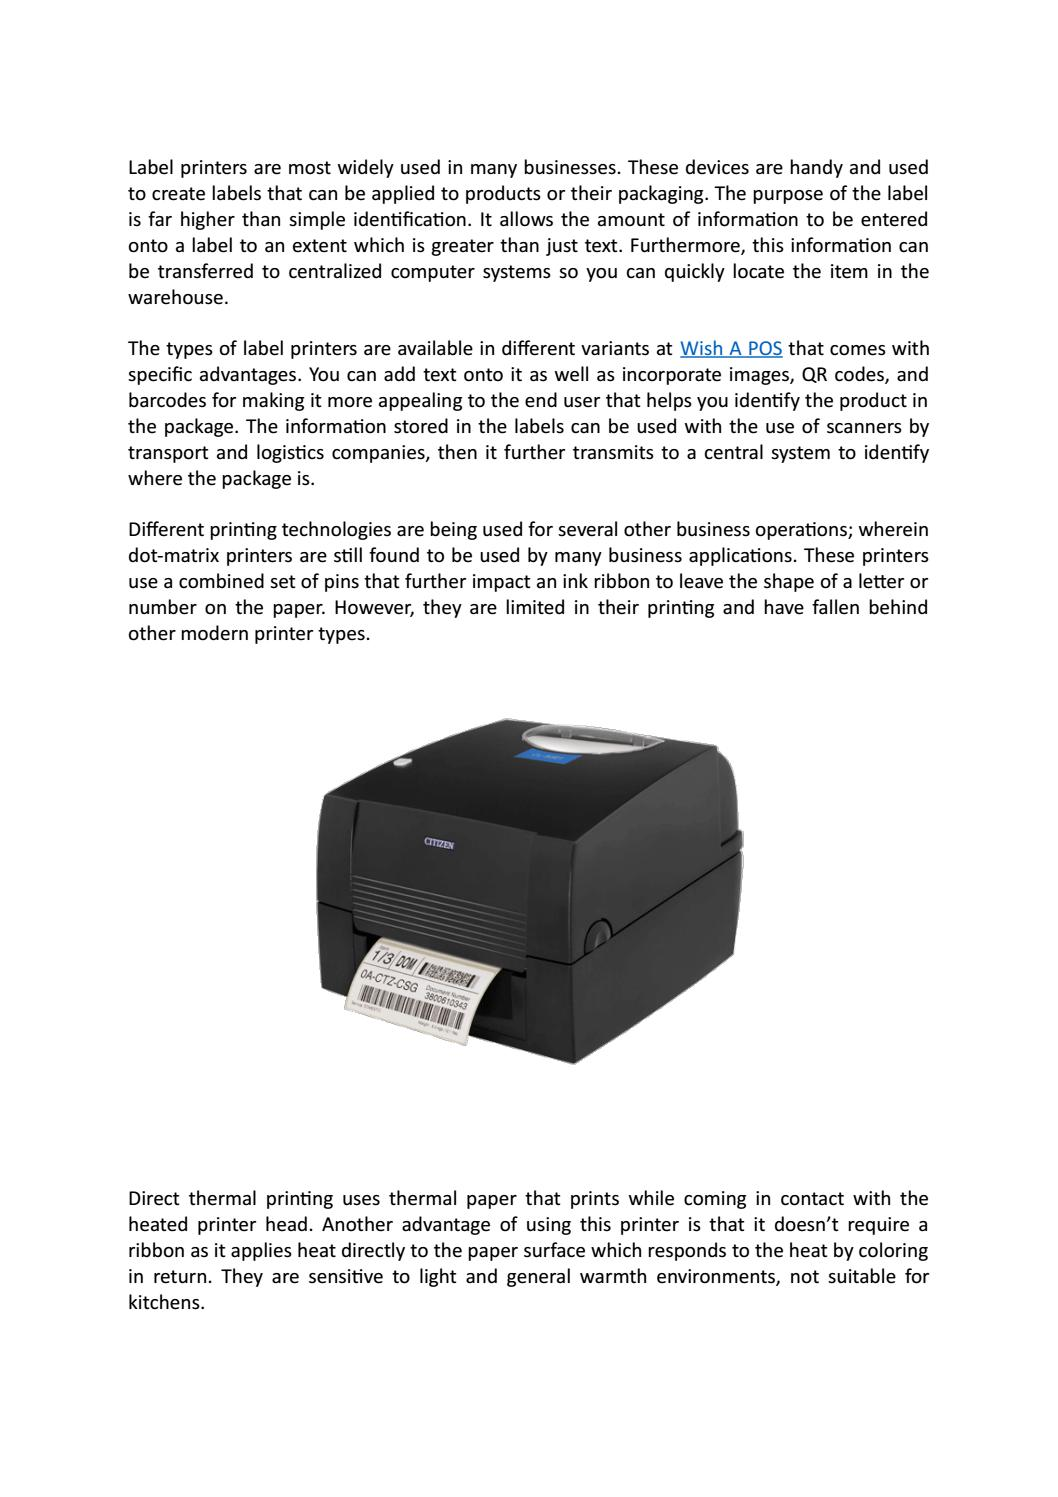 Role of Label Printers in Business @ www wishapos com au by